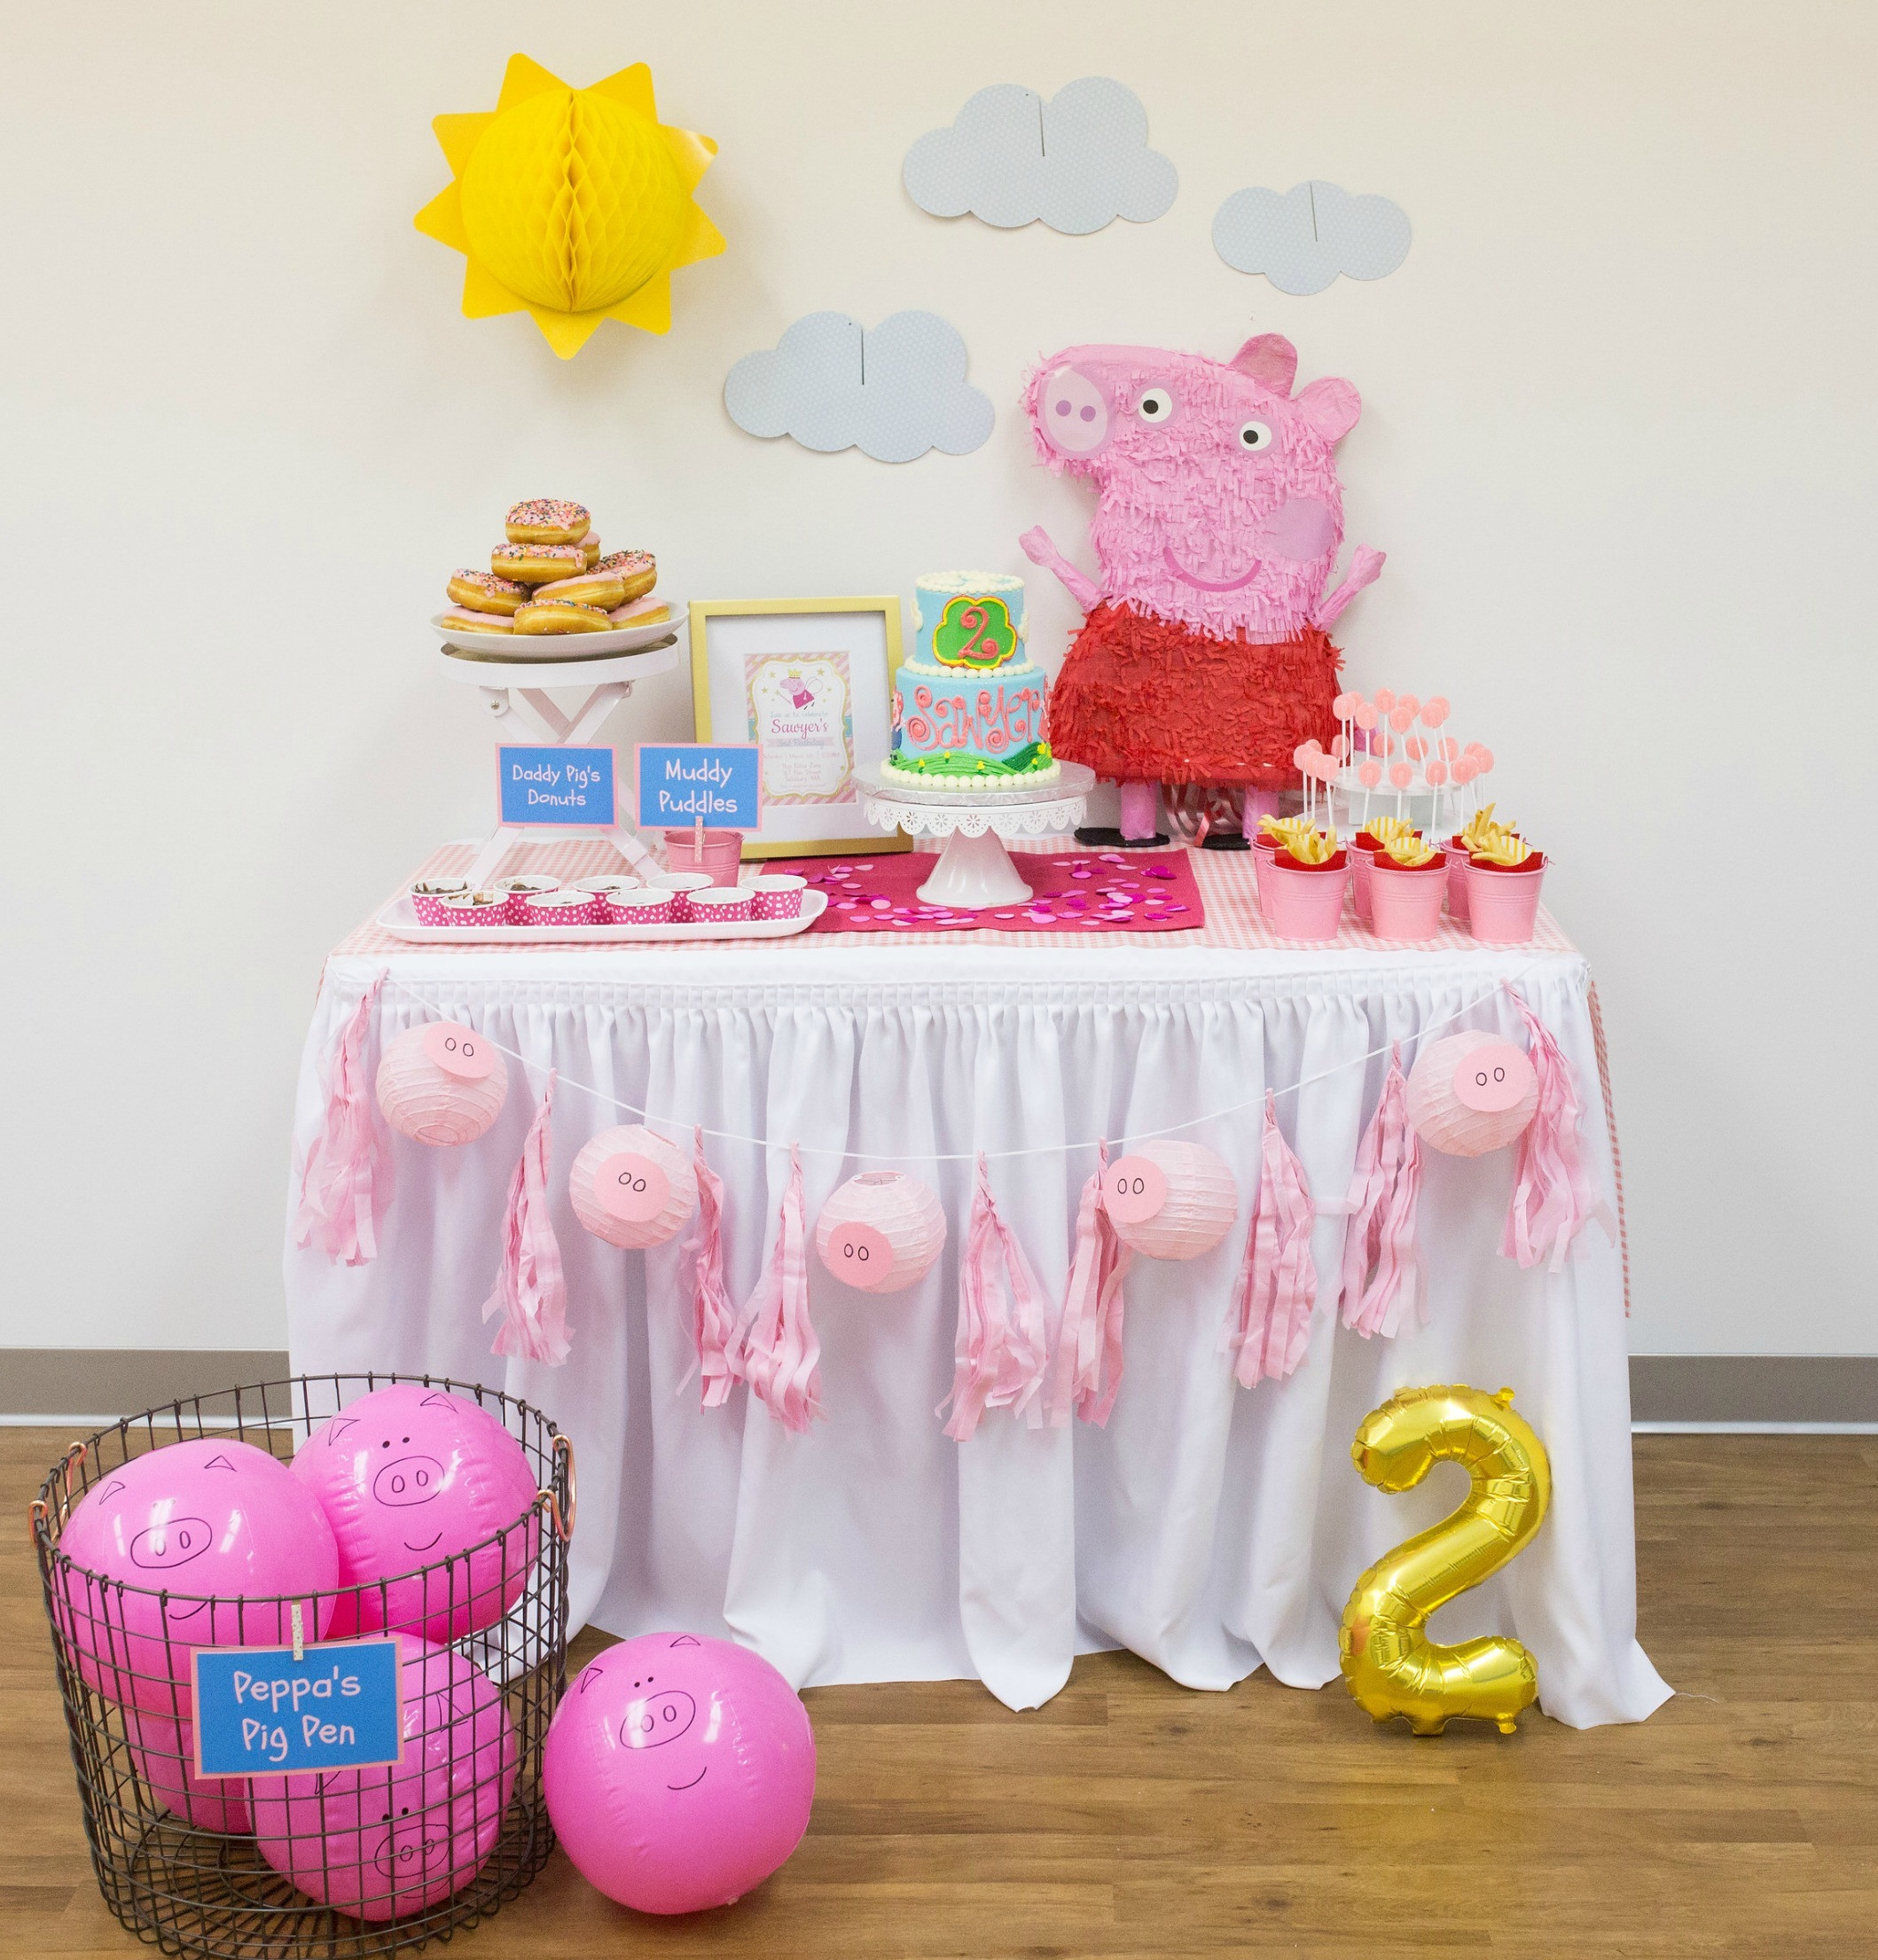 Best ideas about Peppa Pig Birthday Party Decorations . Save or Pin Peppa Pig™ Birthday Party Now.